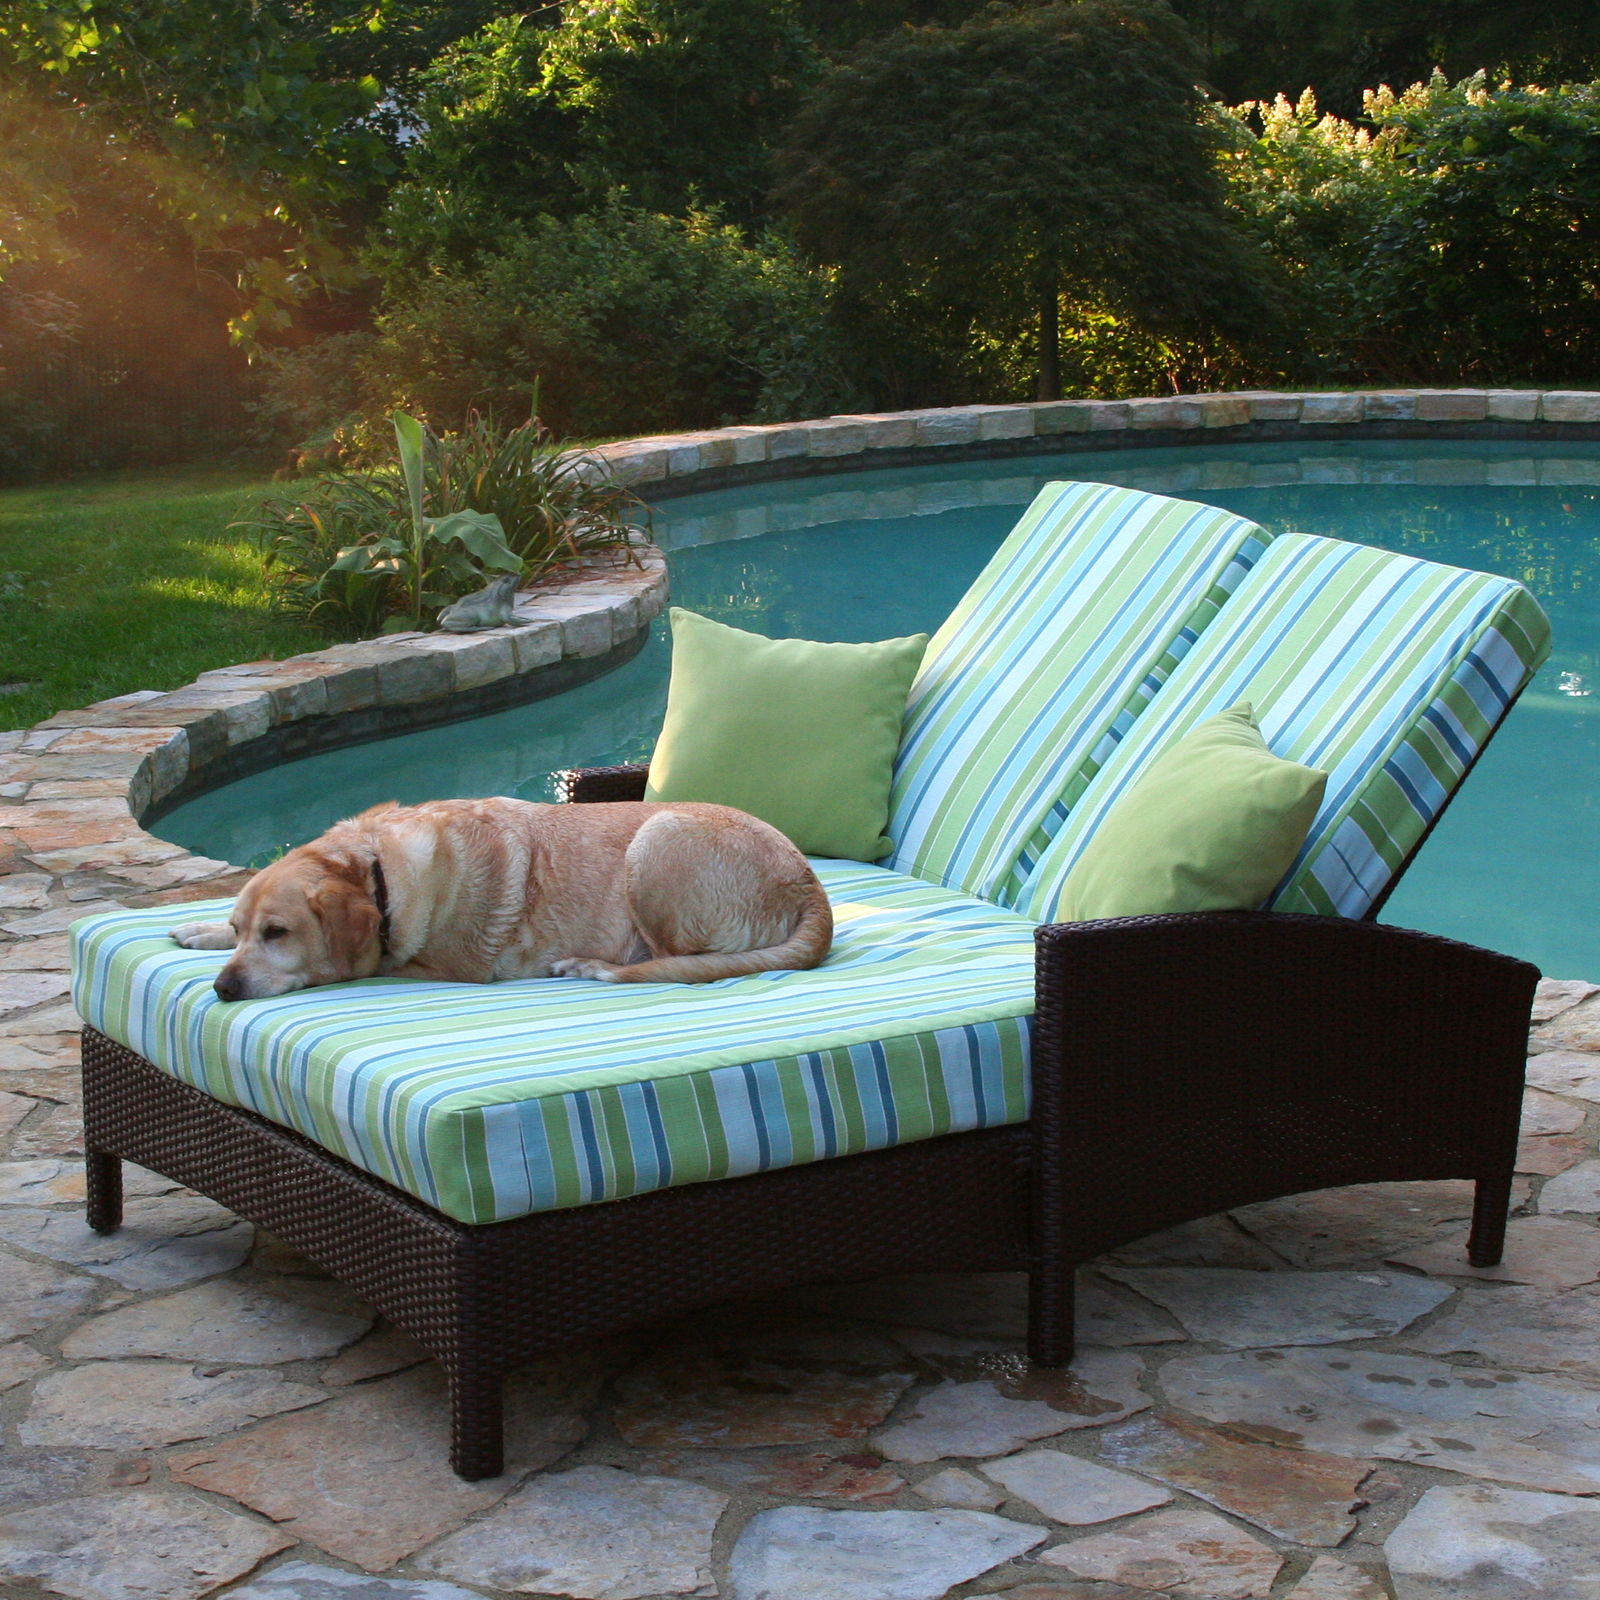 Anacara Atlantis All Weather Wicker Adjustable Double Chaise Lounge   Outdoor  Chaise Lounges At Hayneedle